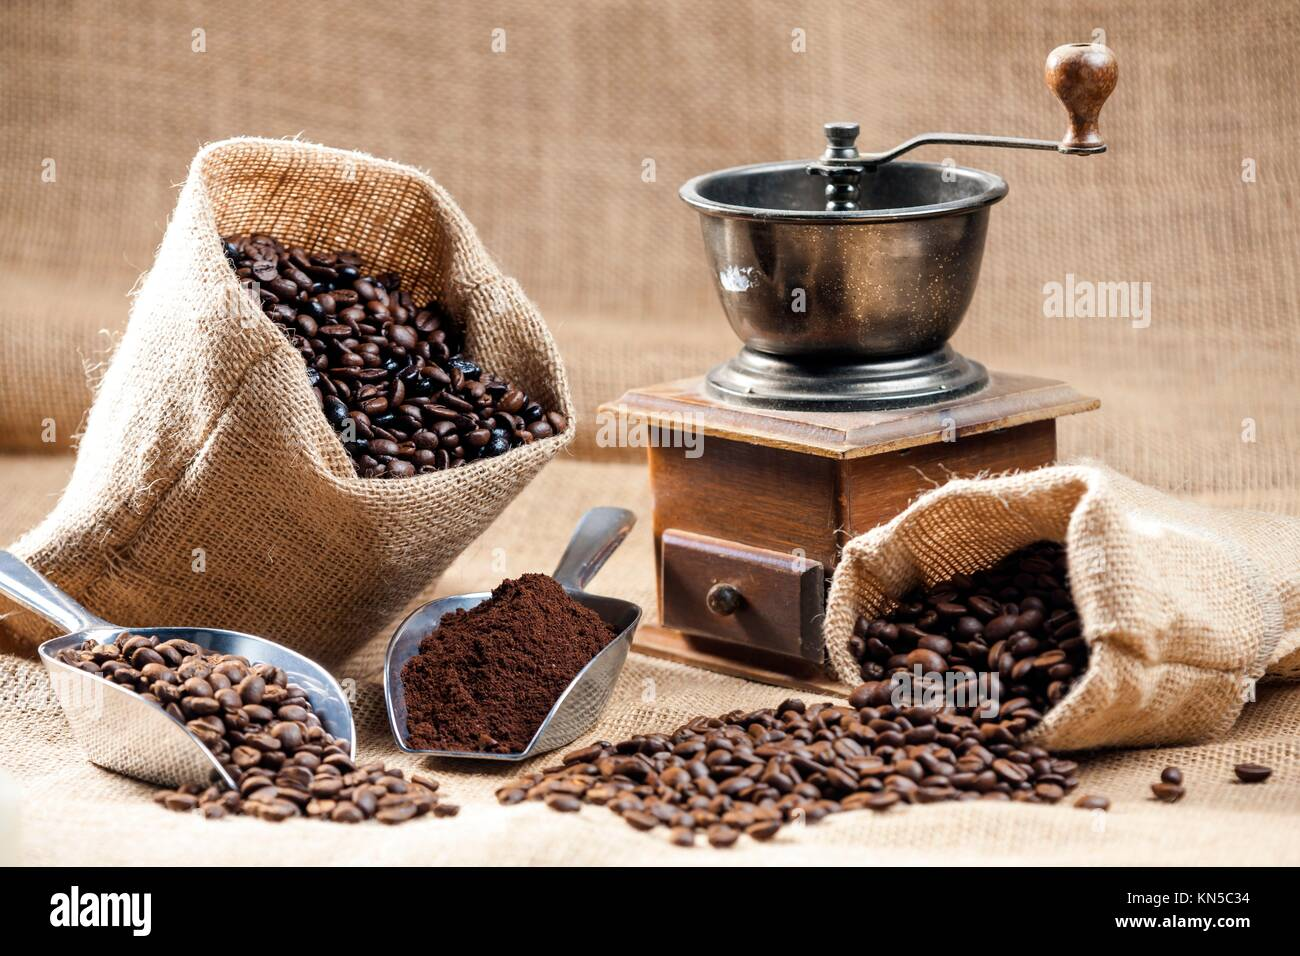 still life of coffee beans in jute bags with coffee grinder. Stock Photo